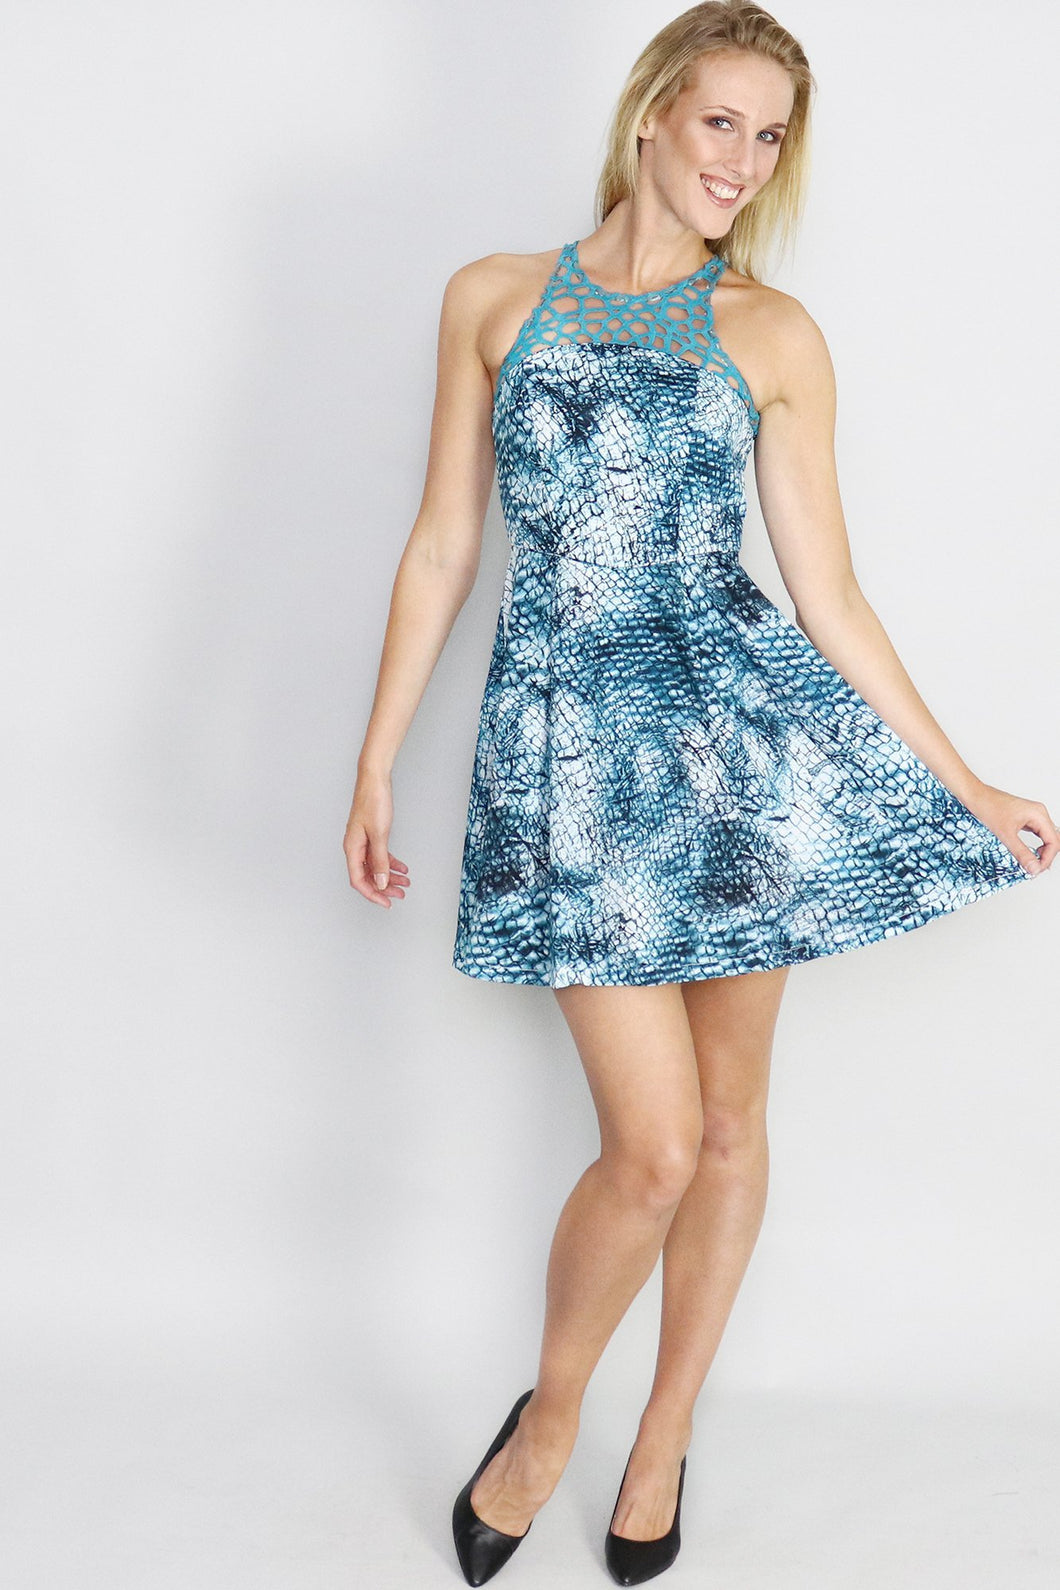 Fractured Fantansy Fit & Flare Dress - Ann Et Craig